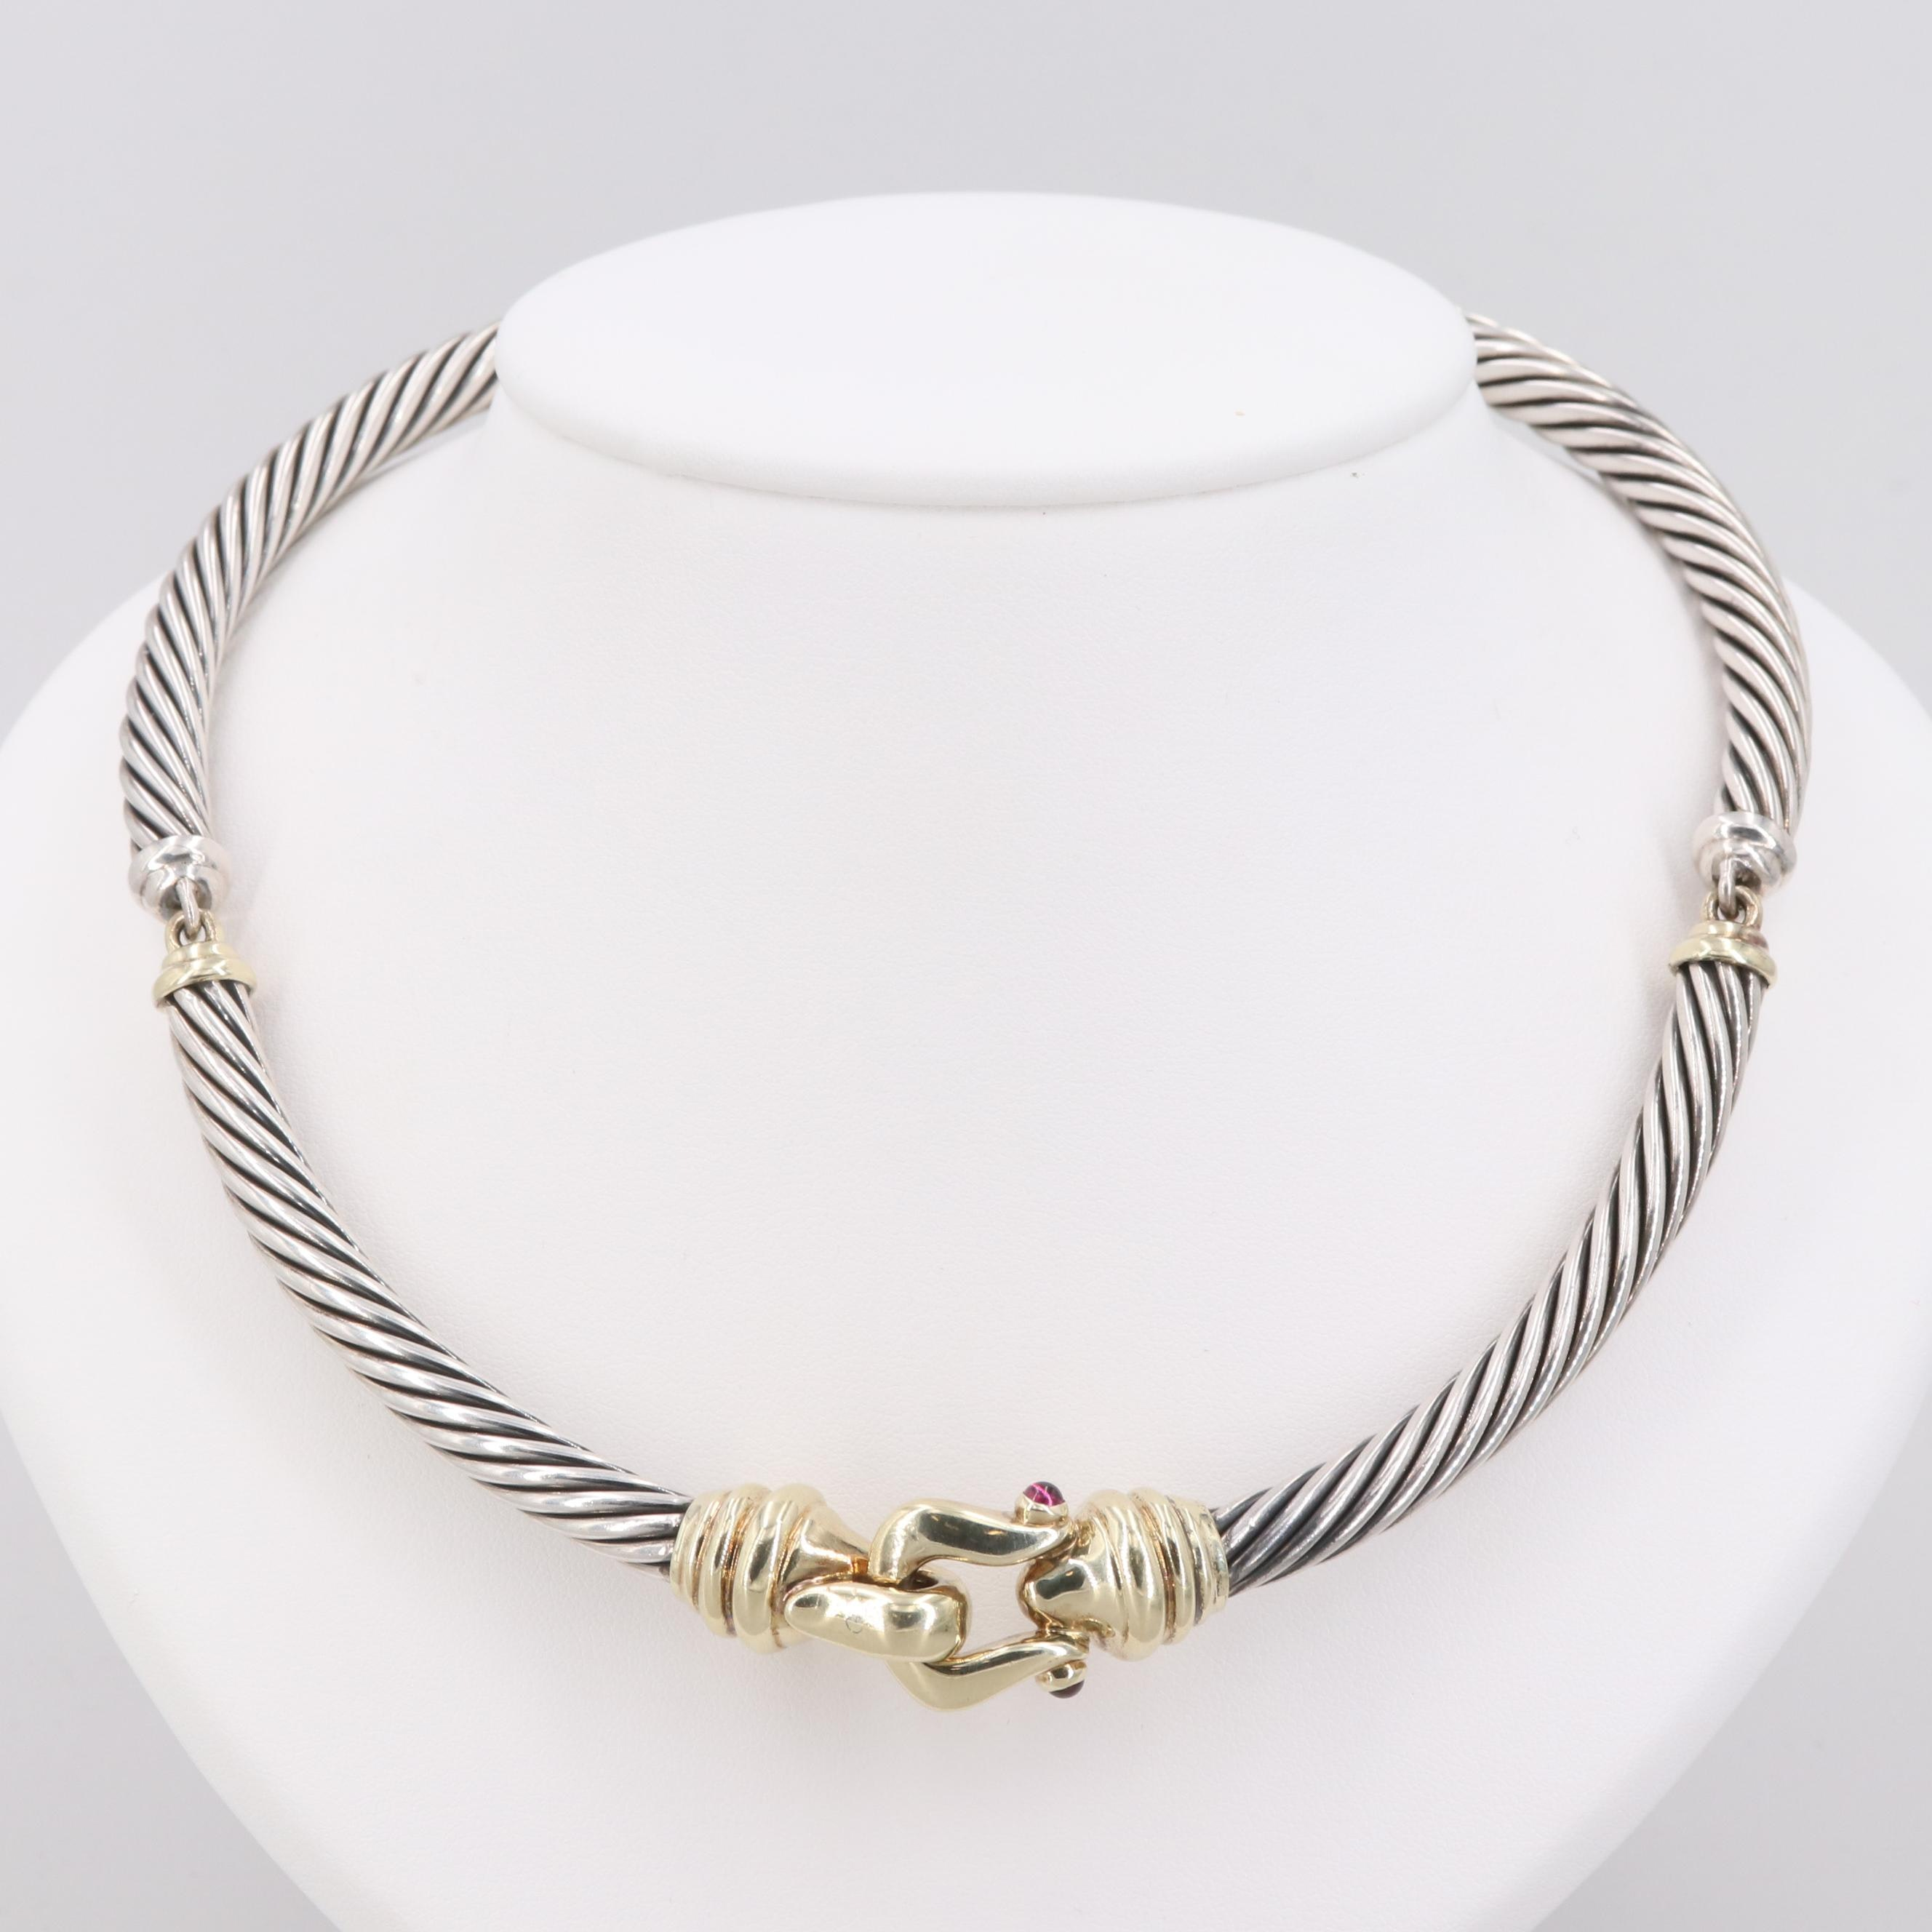 David Yurman Sterling Silver Garnet Necklace with 14K Yellow Gold Accents